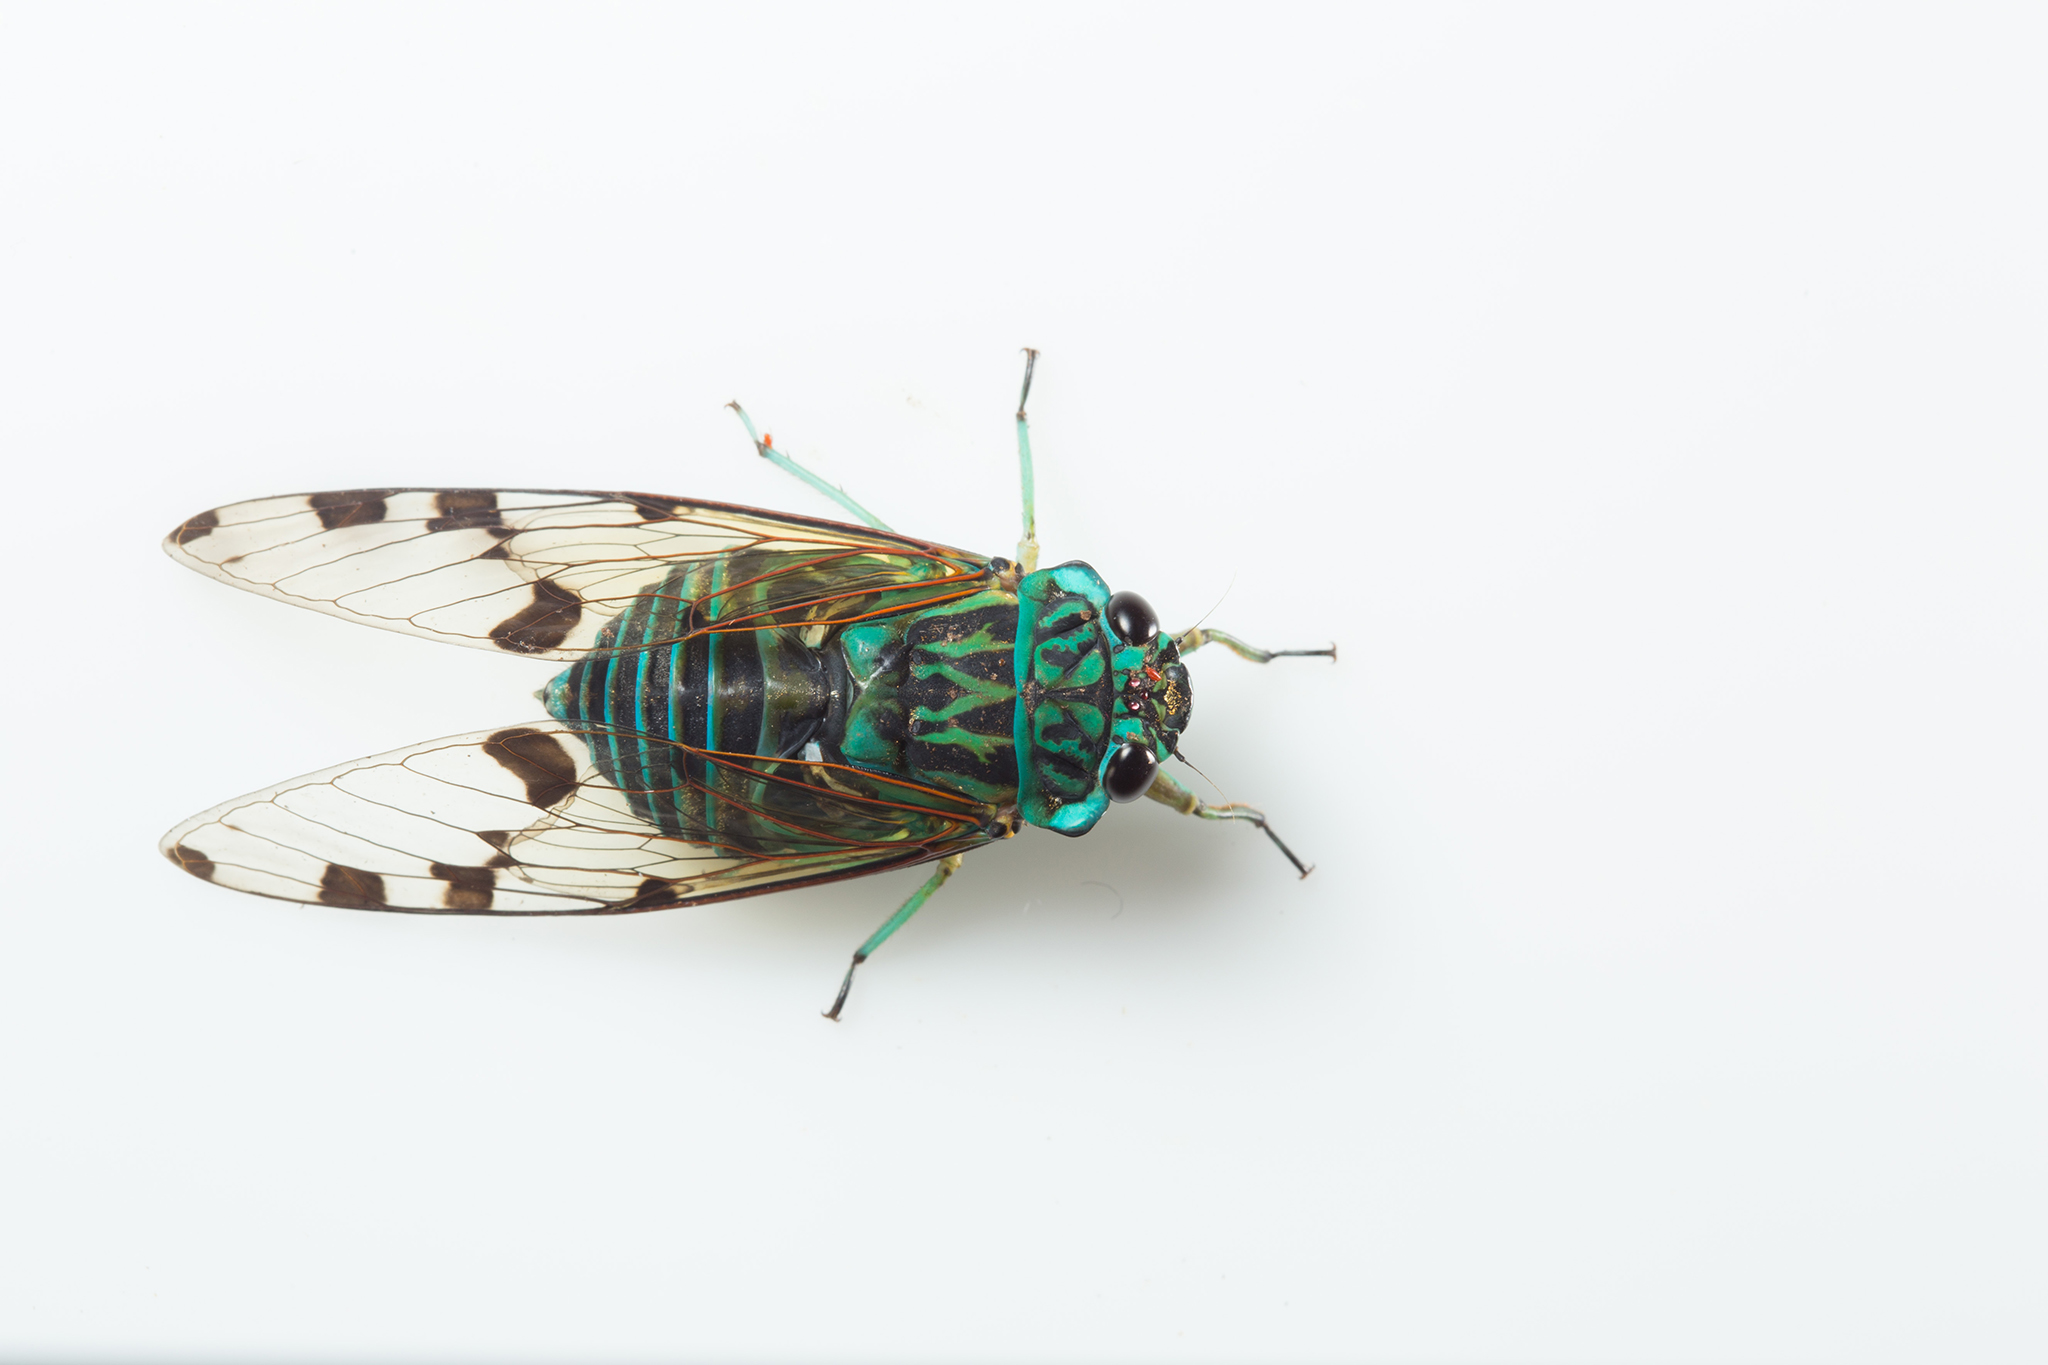 This cicada (Zamarra sp.) is one of the more colorful species in Yasuní—and also one of the loudest, typically calling raucously throughout the day.